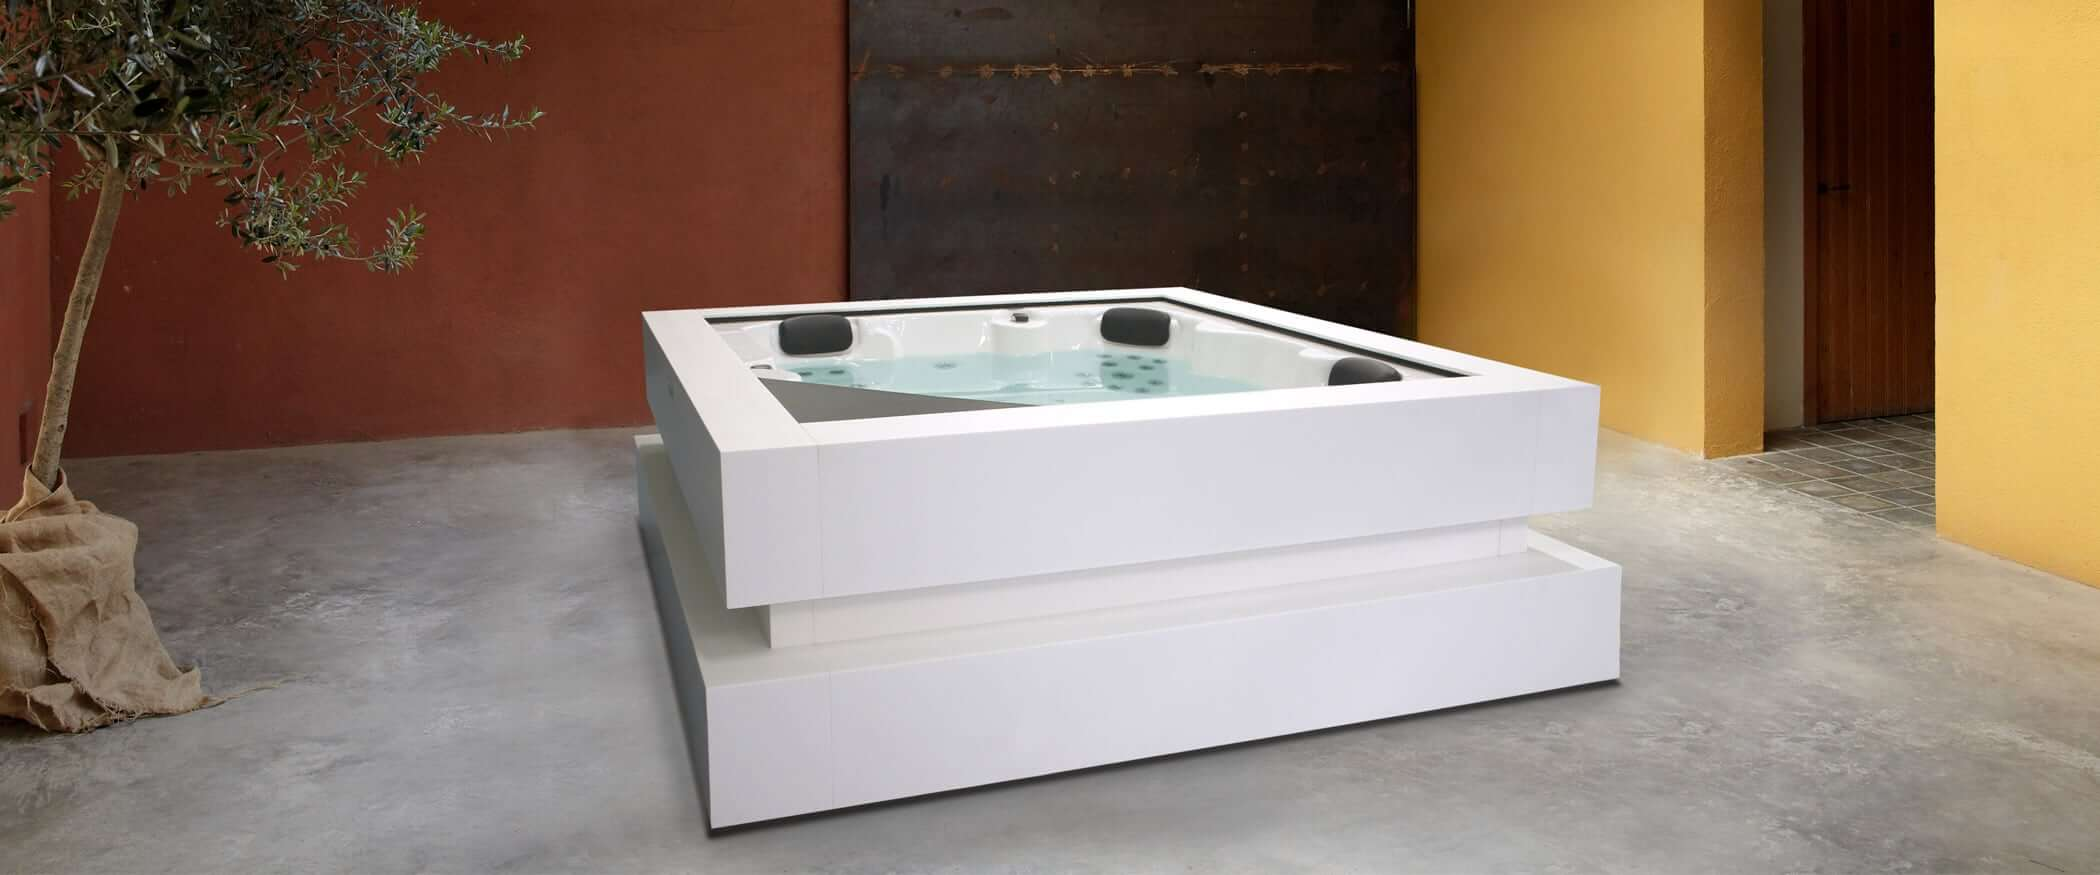 Buy Hot Tub >> Buy The Exclusive Hot Tub Cube Ergo Aquavia Spa